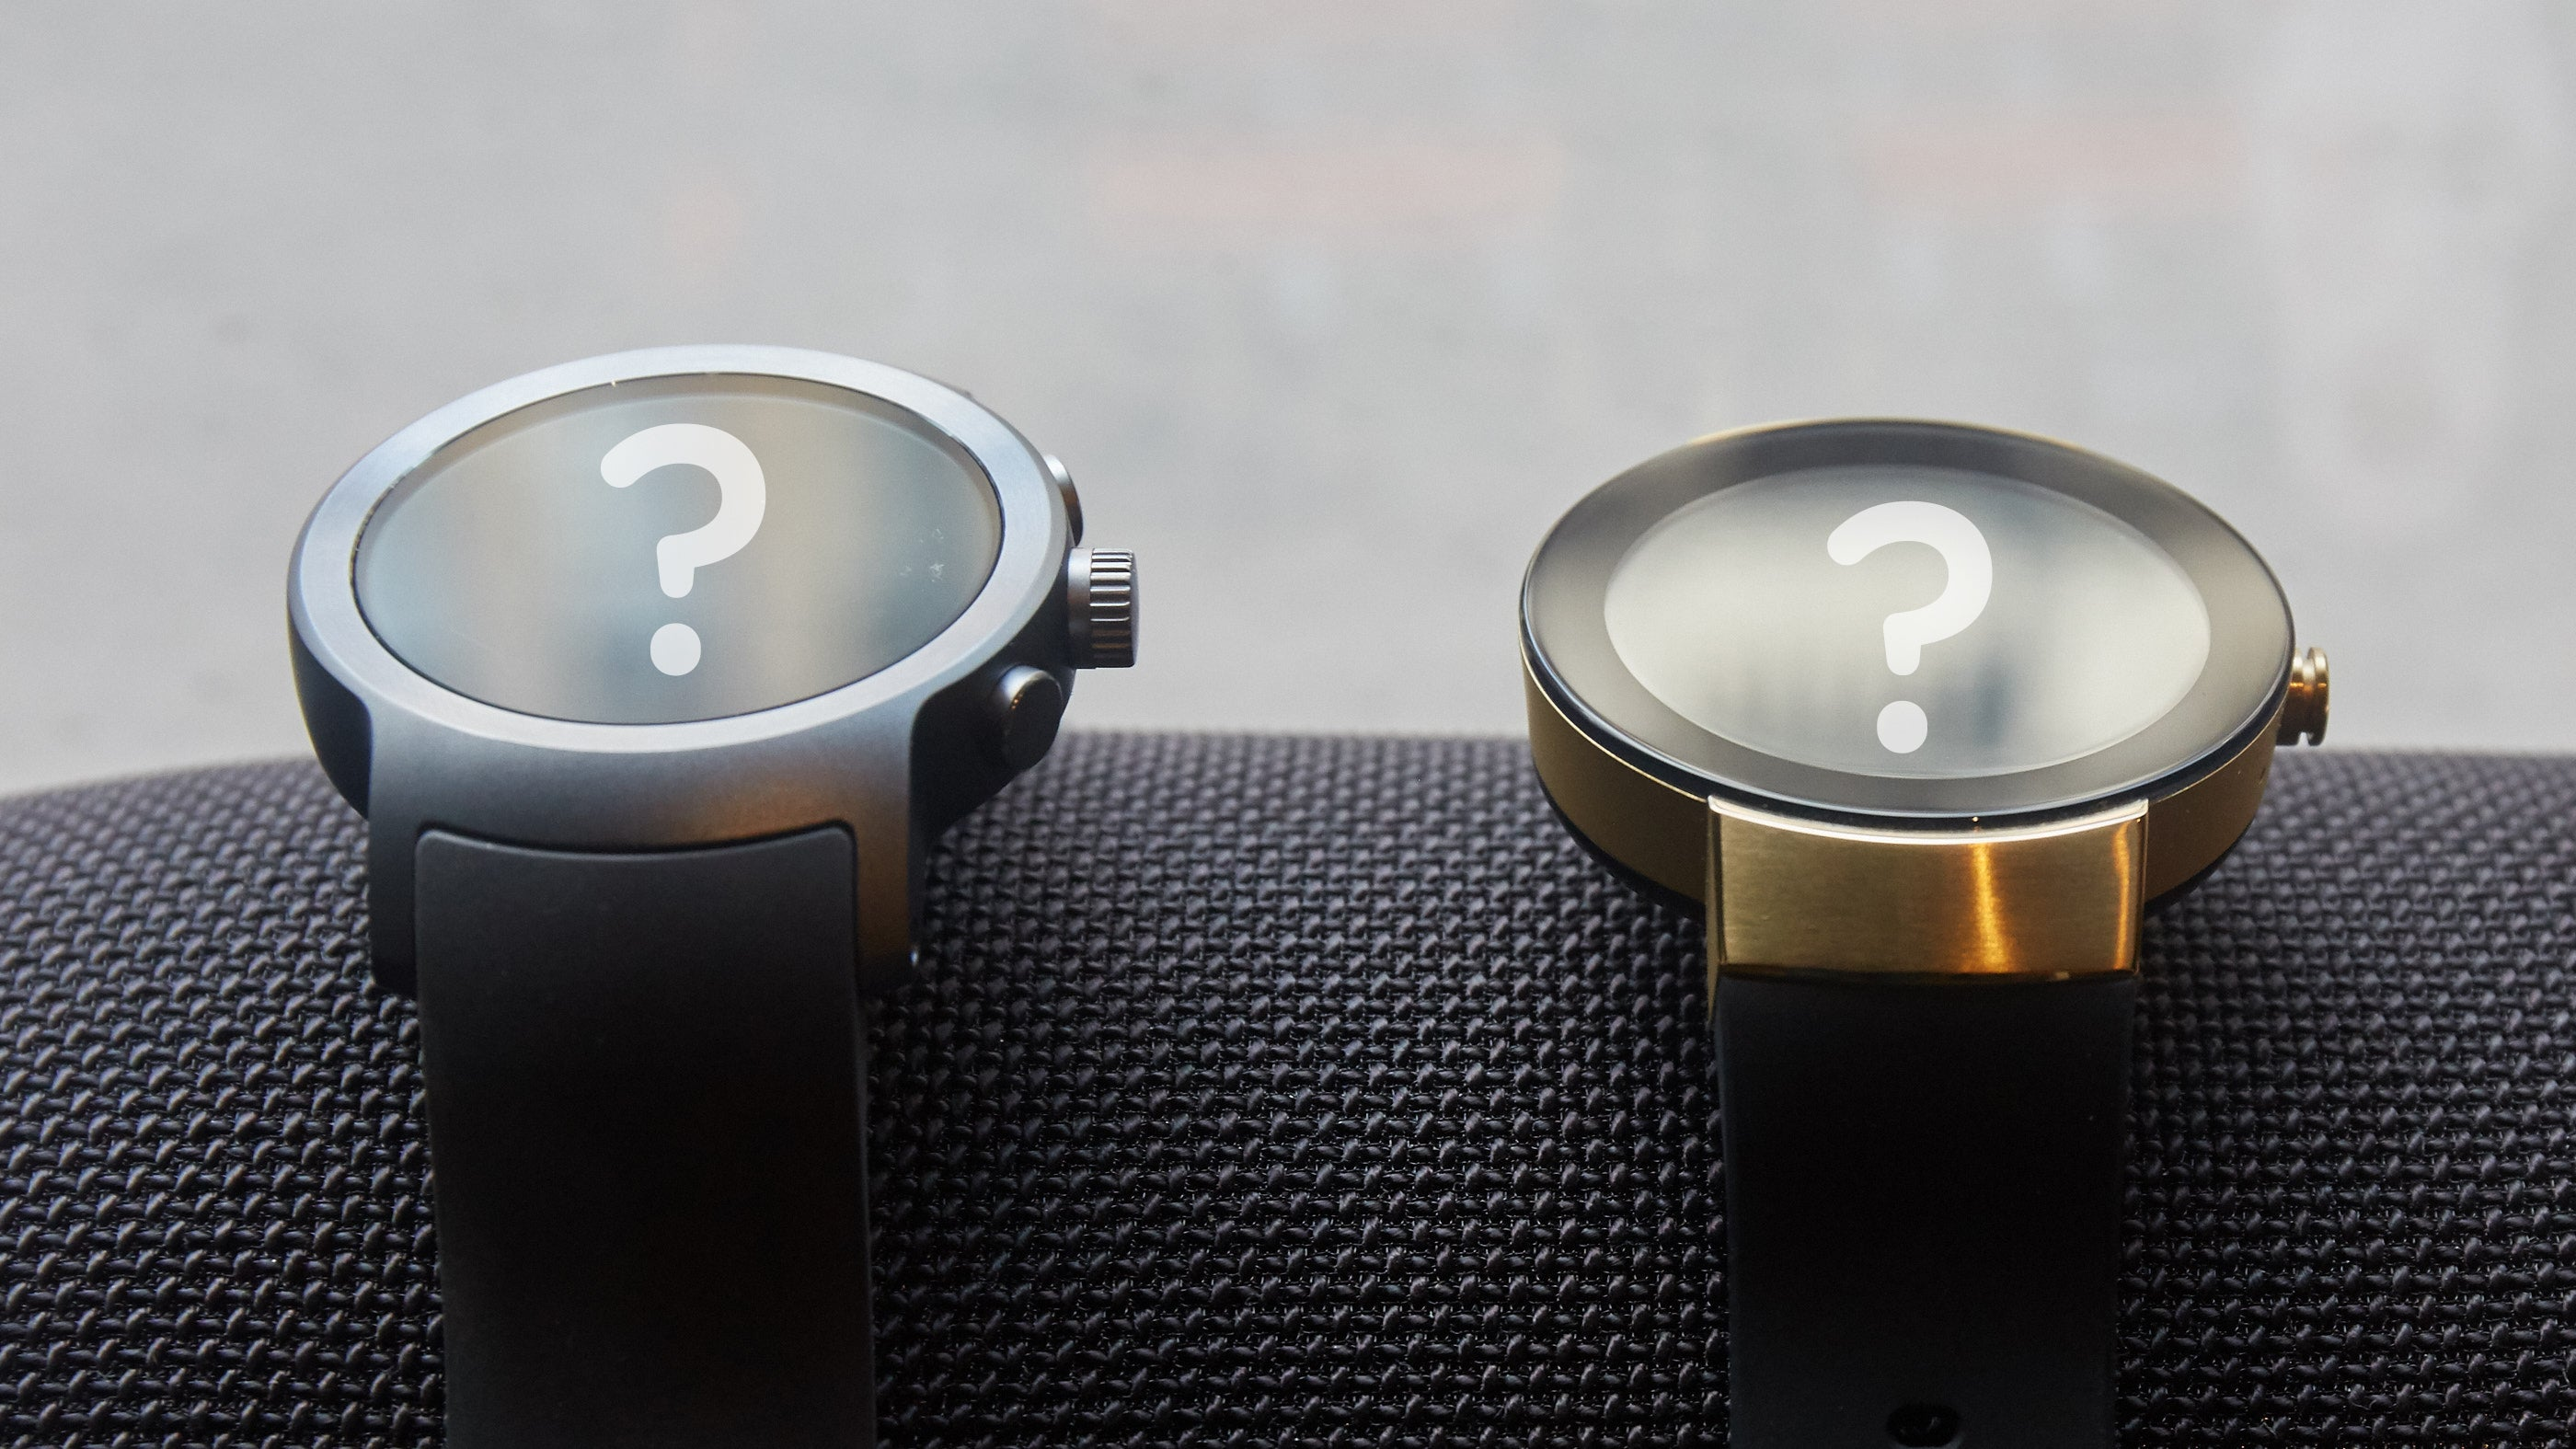 What The Heck Is Google's Plan For Android Wear?